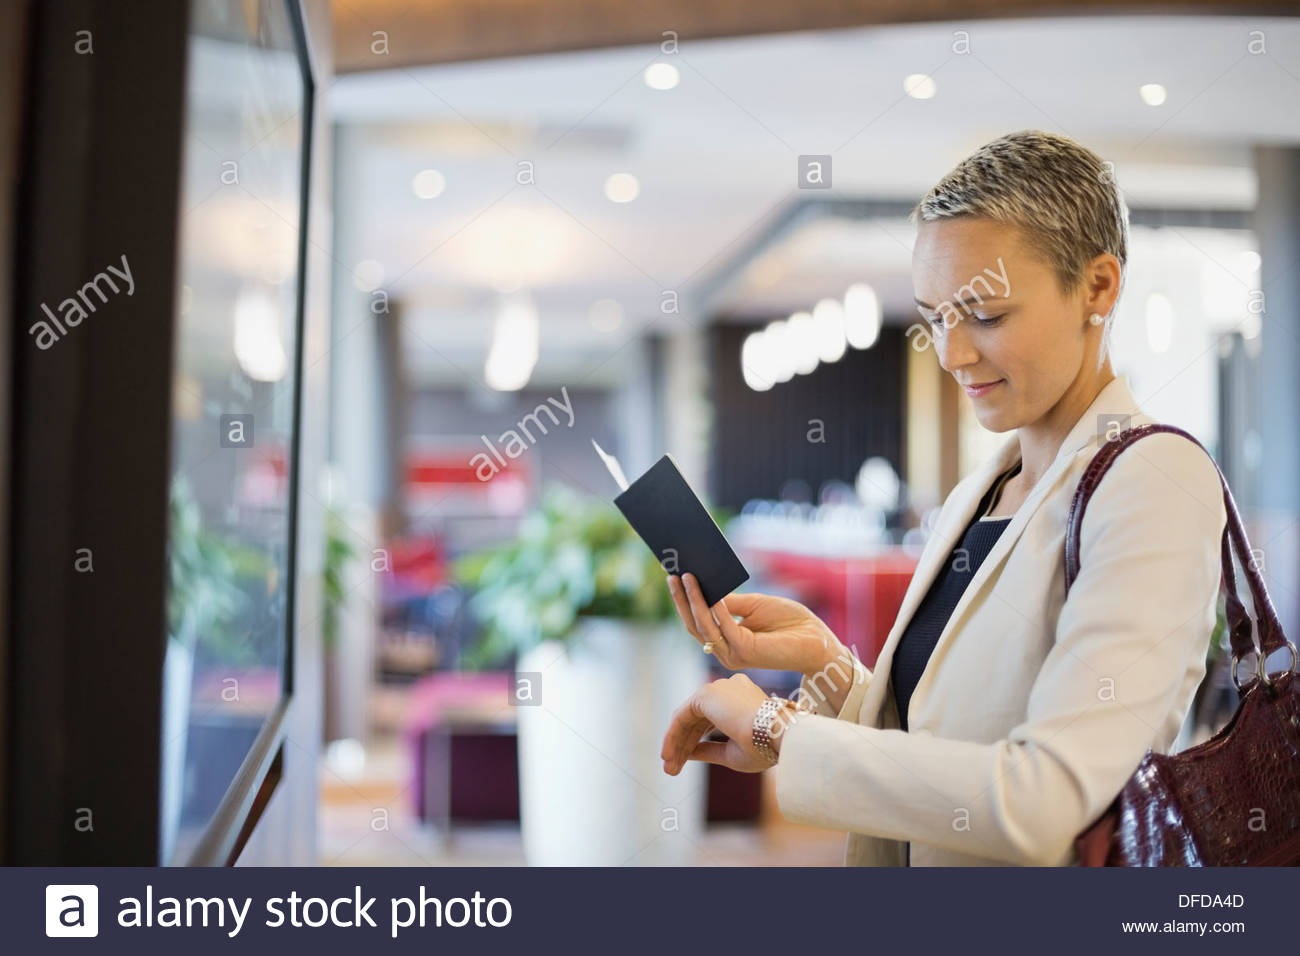 Businesswoman checking the time at airport terminal - Stock Image